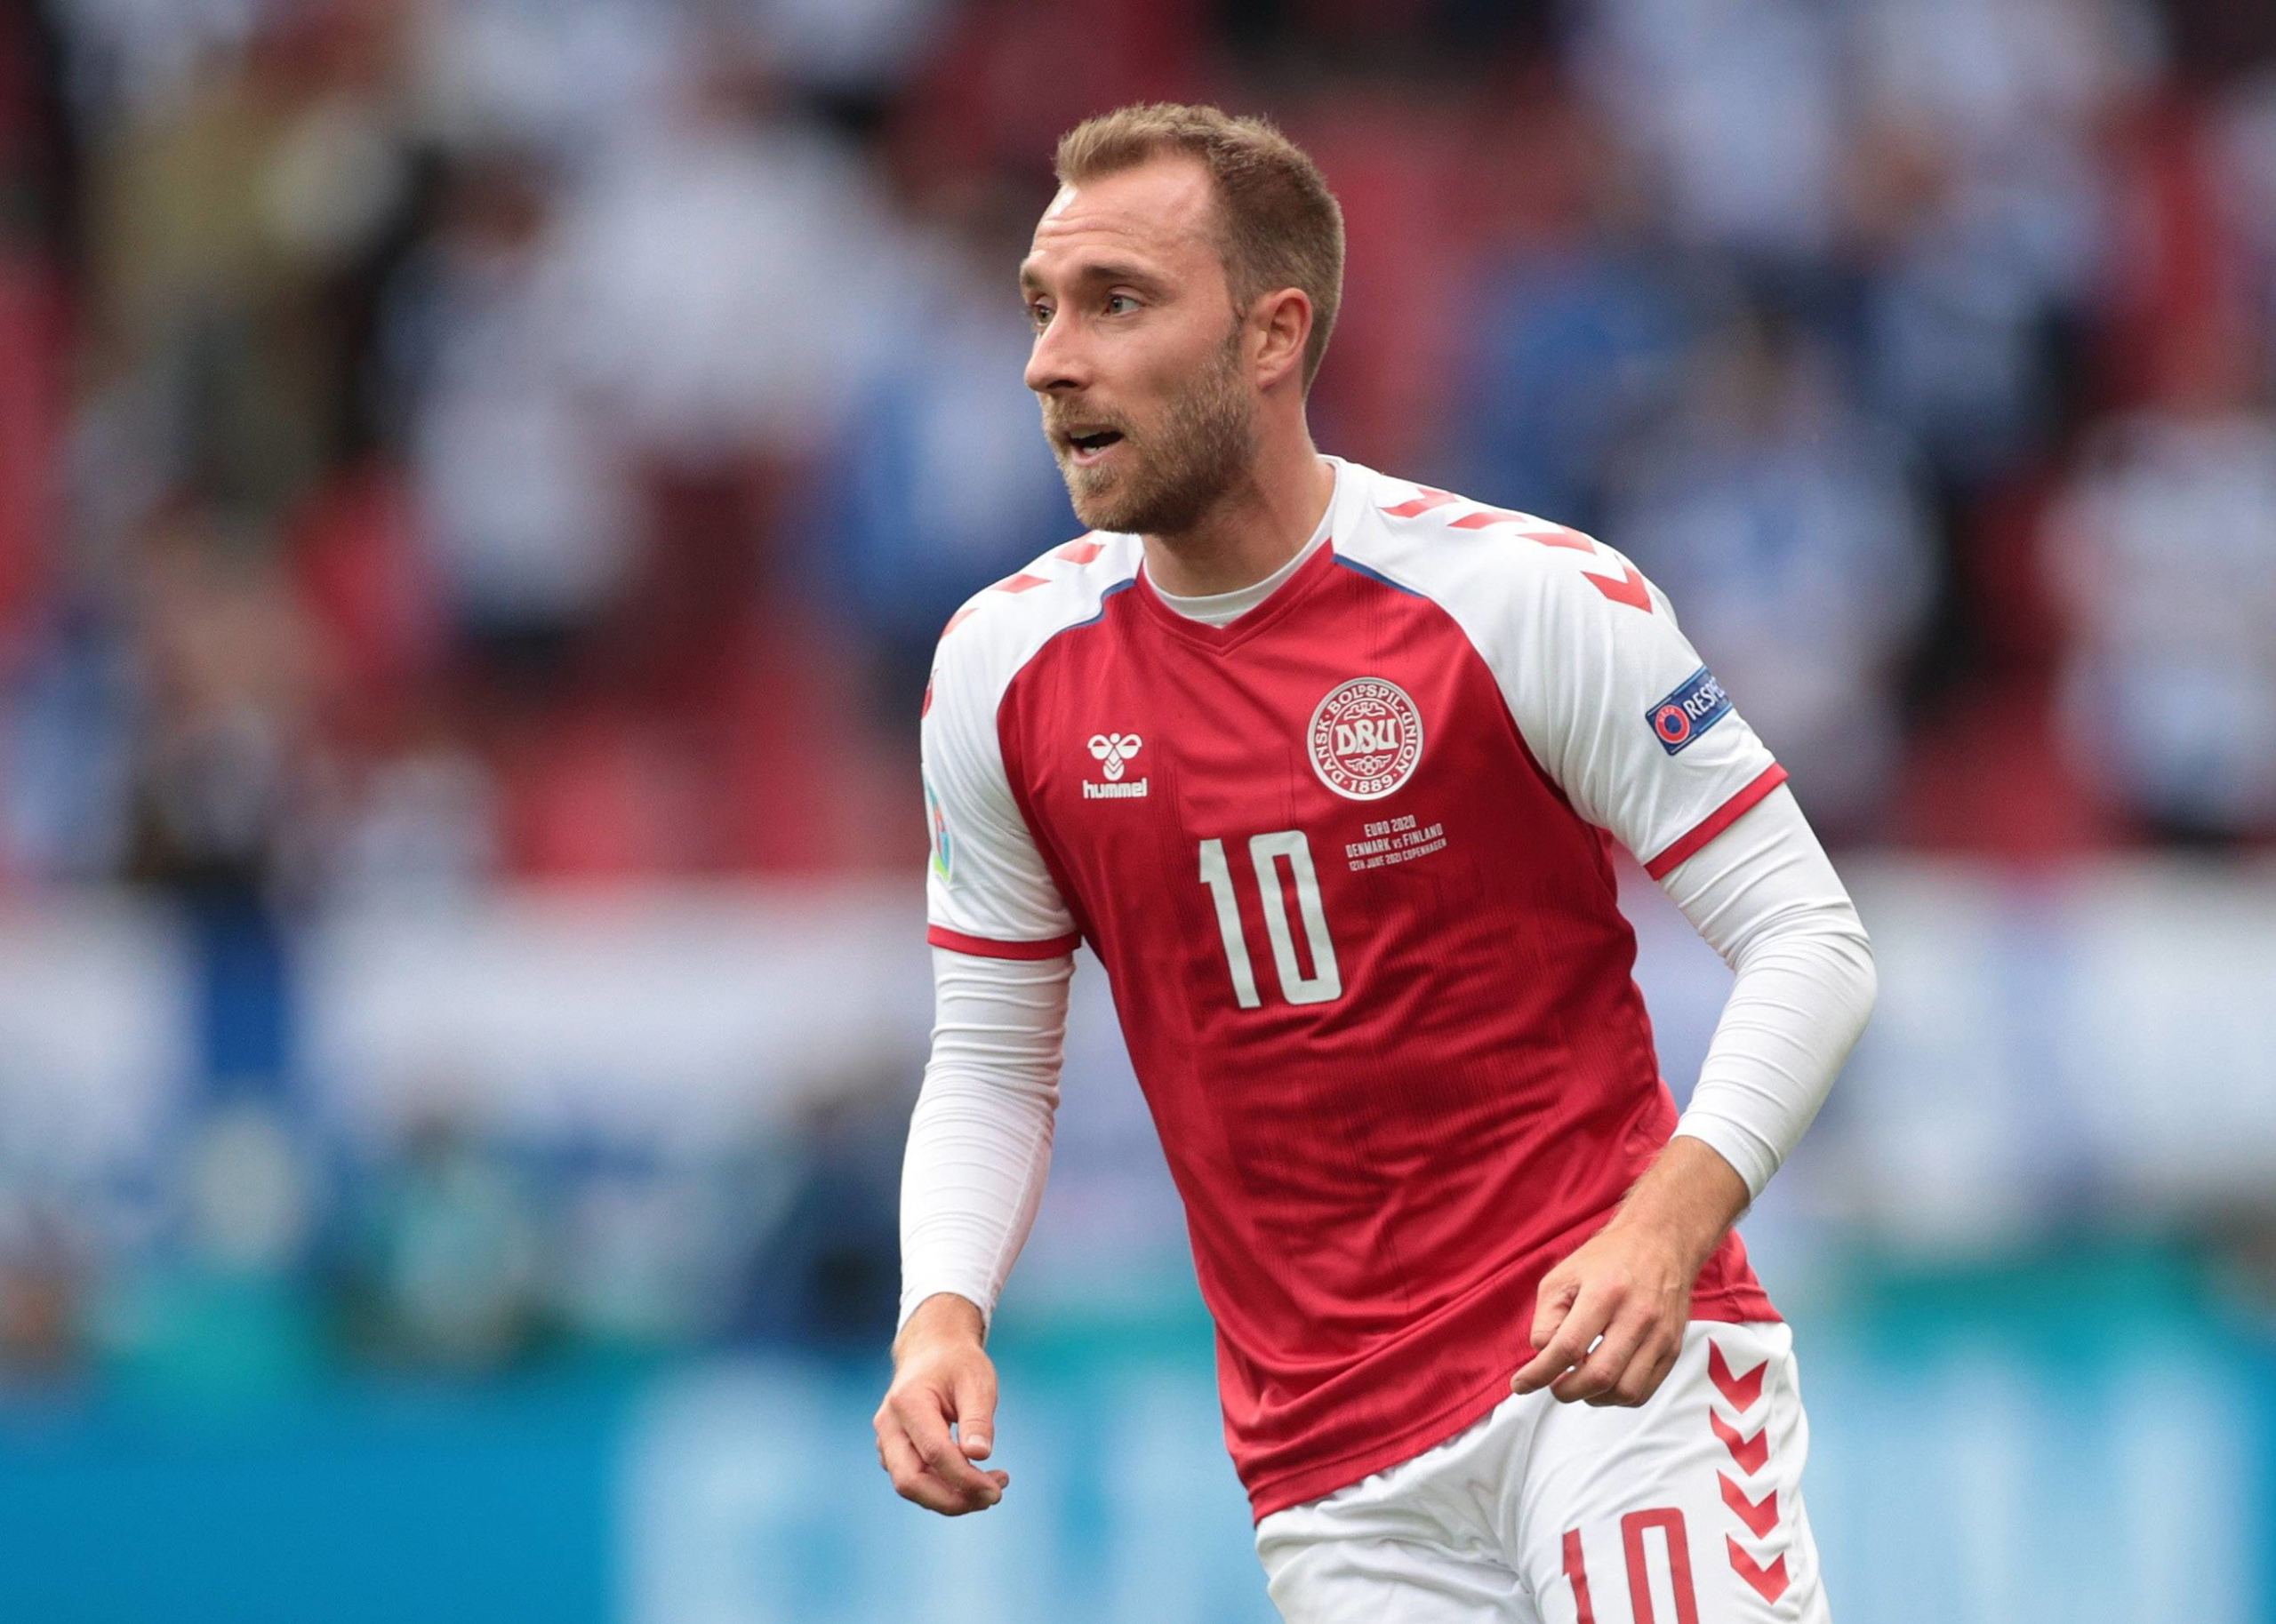 Denmark's Christian Eriksen suffered a cardiac arrest during his team's Euro 2020 match against Finland on June 12. | POOL / VIA REUTERS